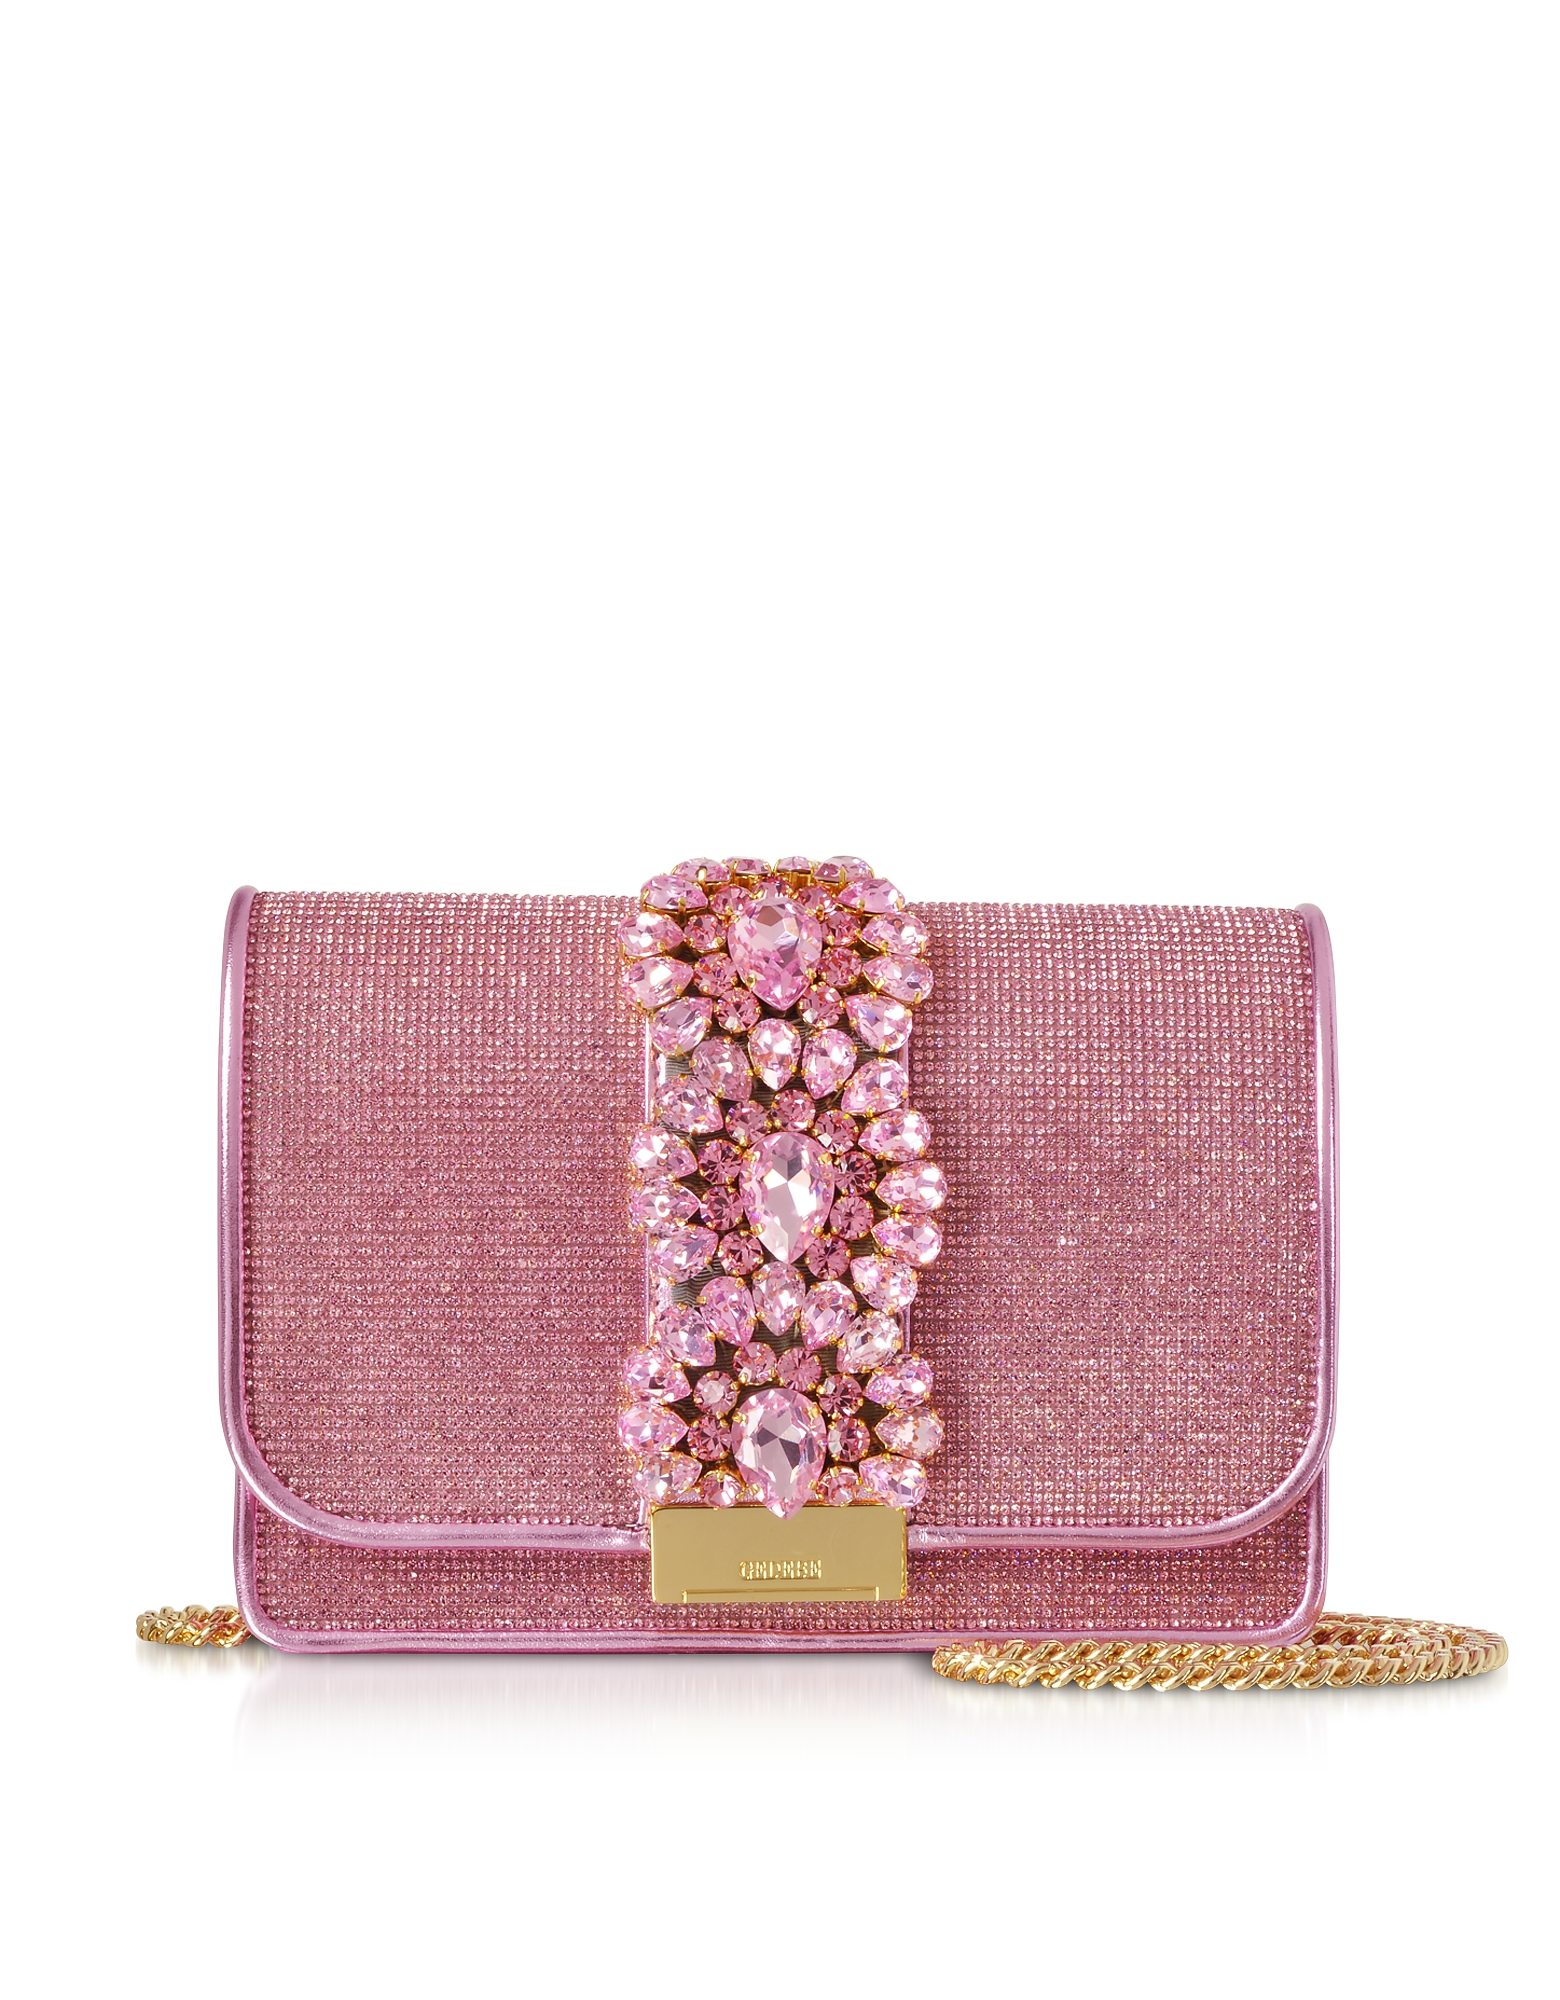 Gedebe  Handbags Cliky Light Rose Crystals Clutch